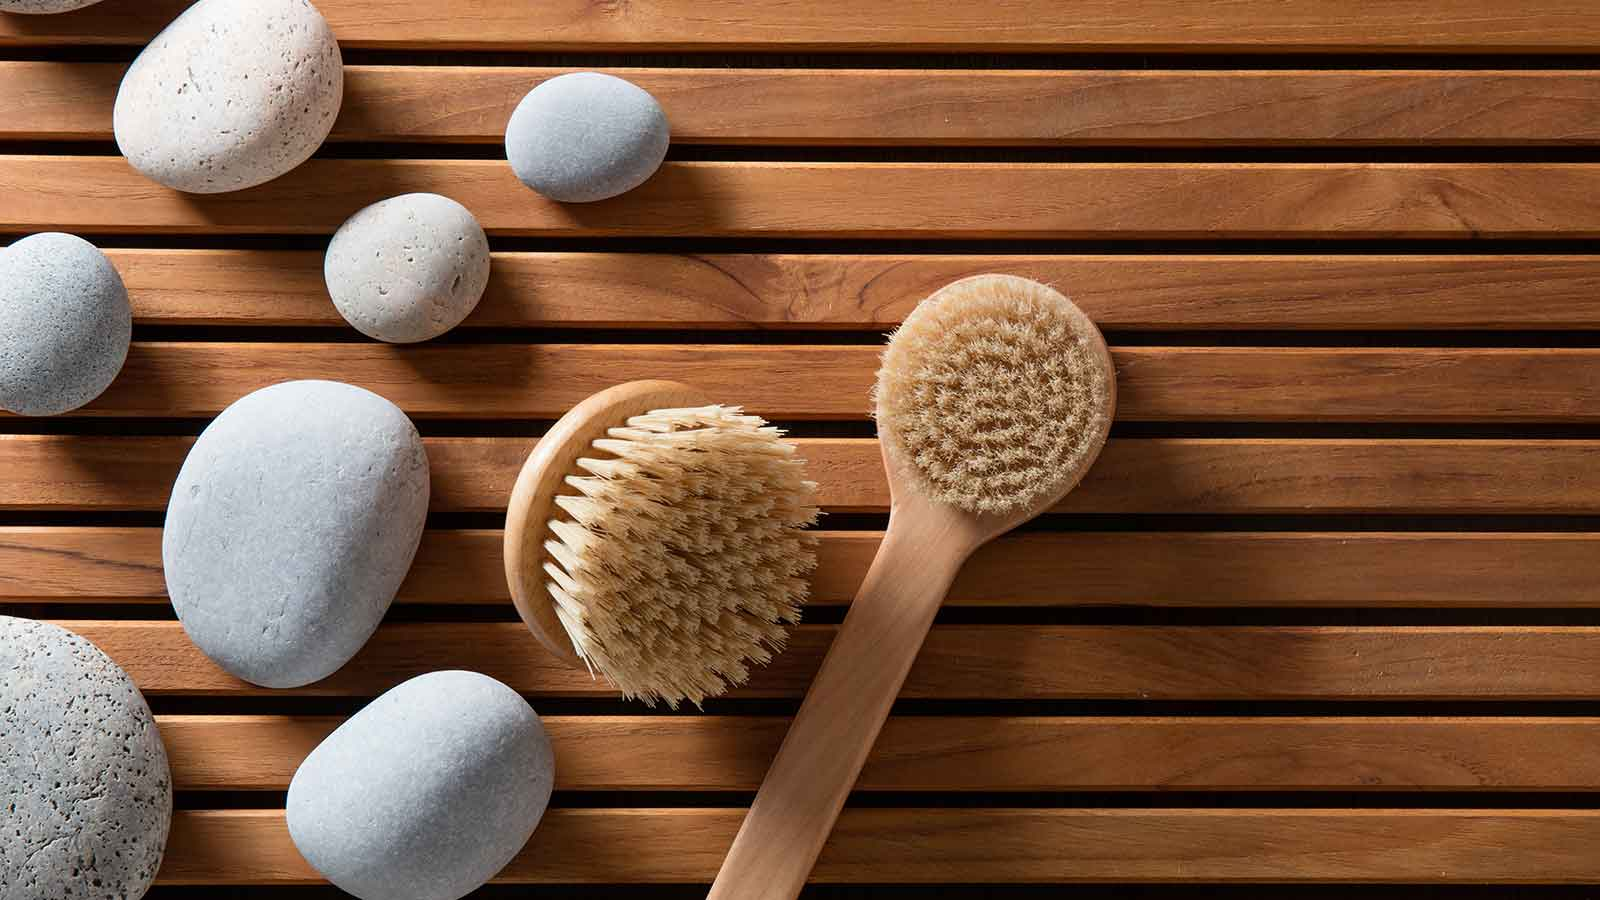 dry brushes in a spa resting on wooden slats